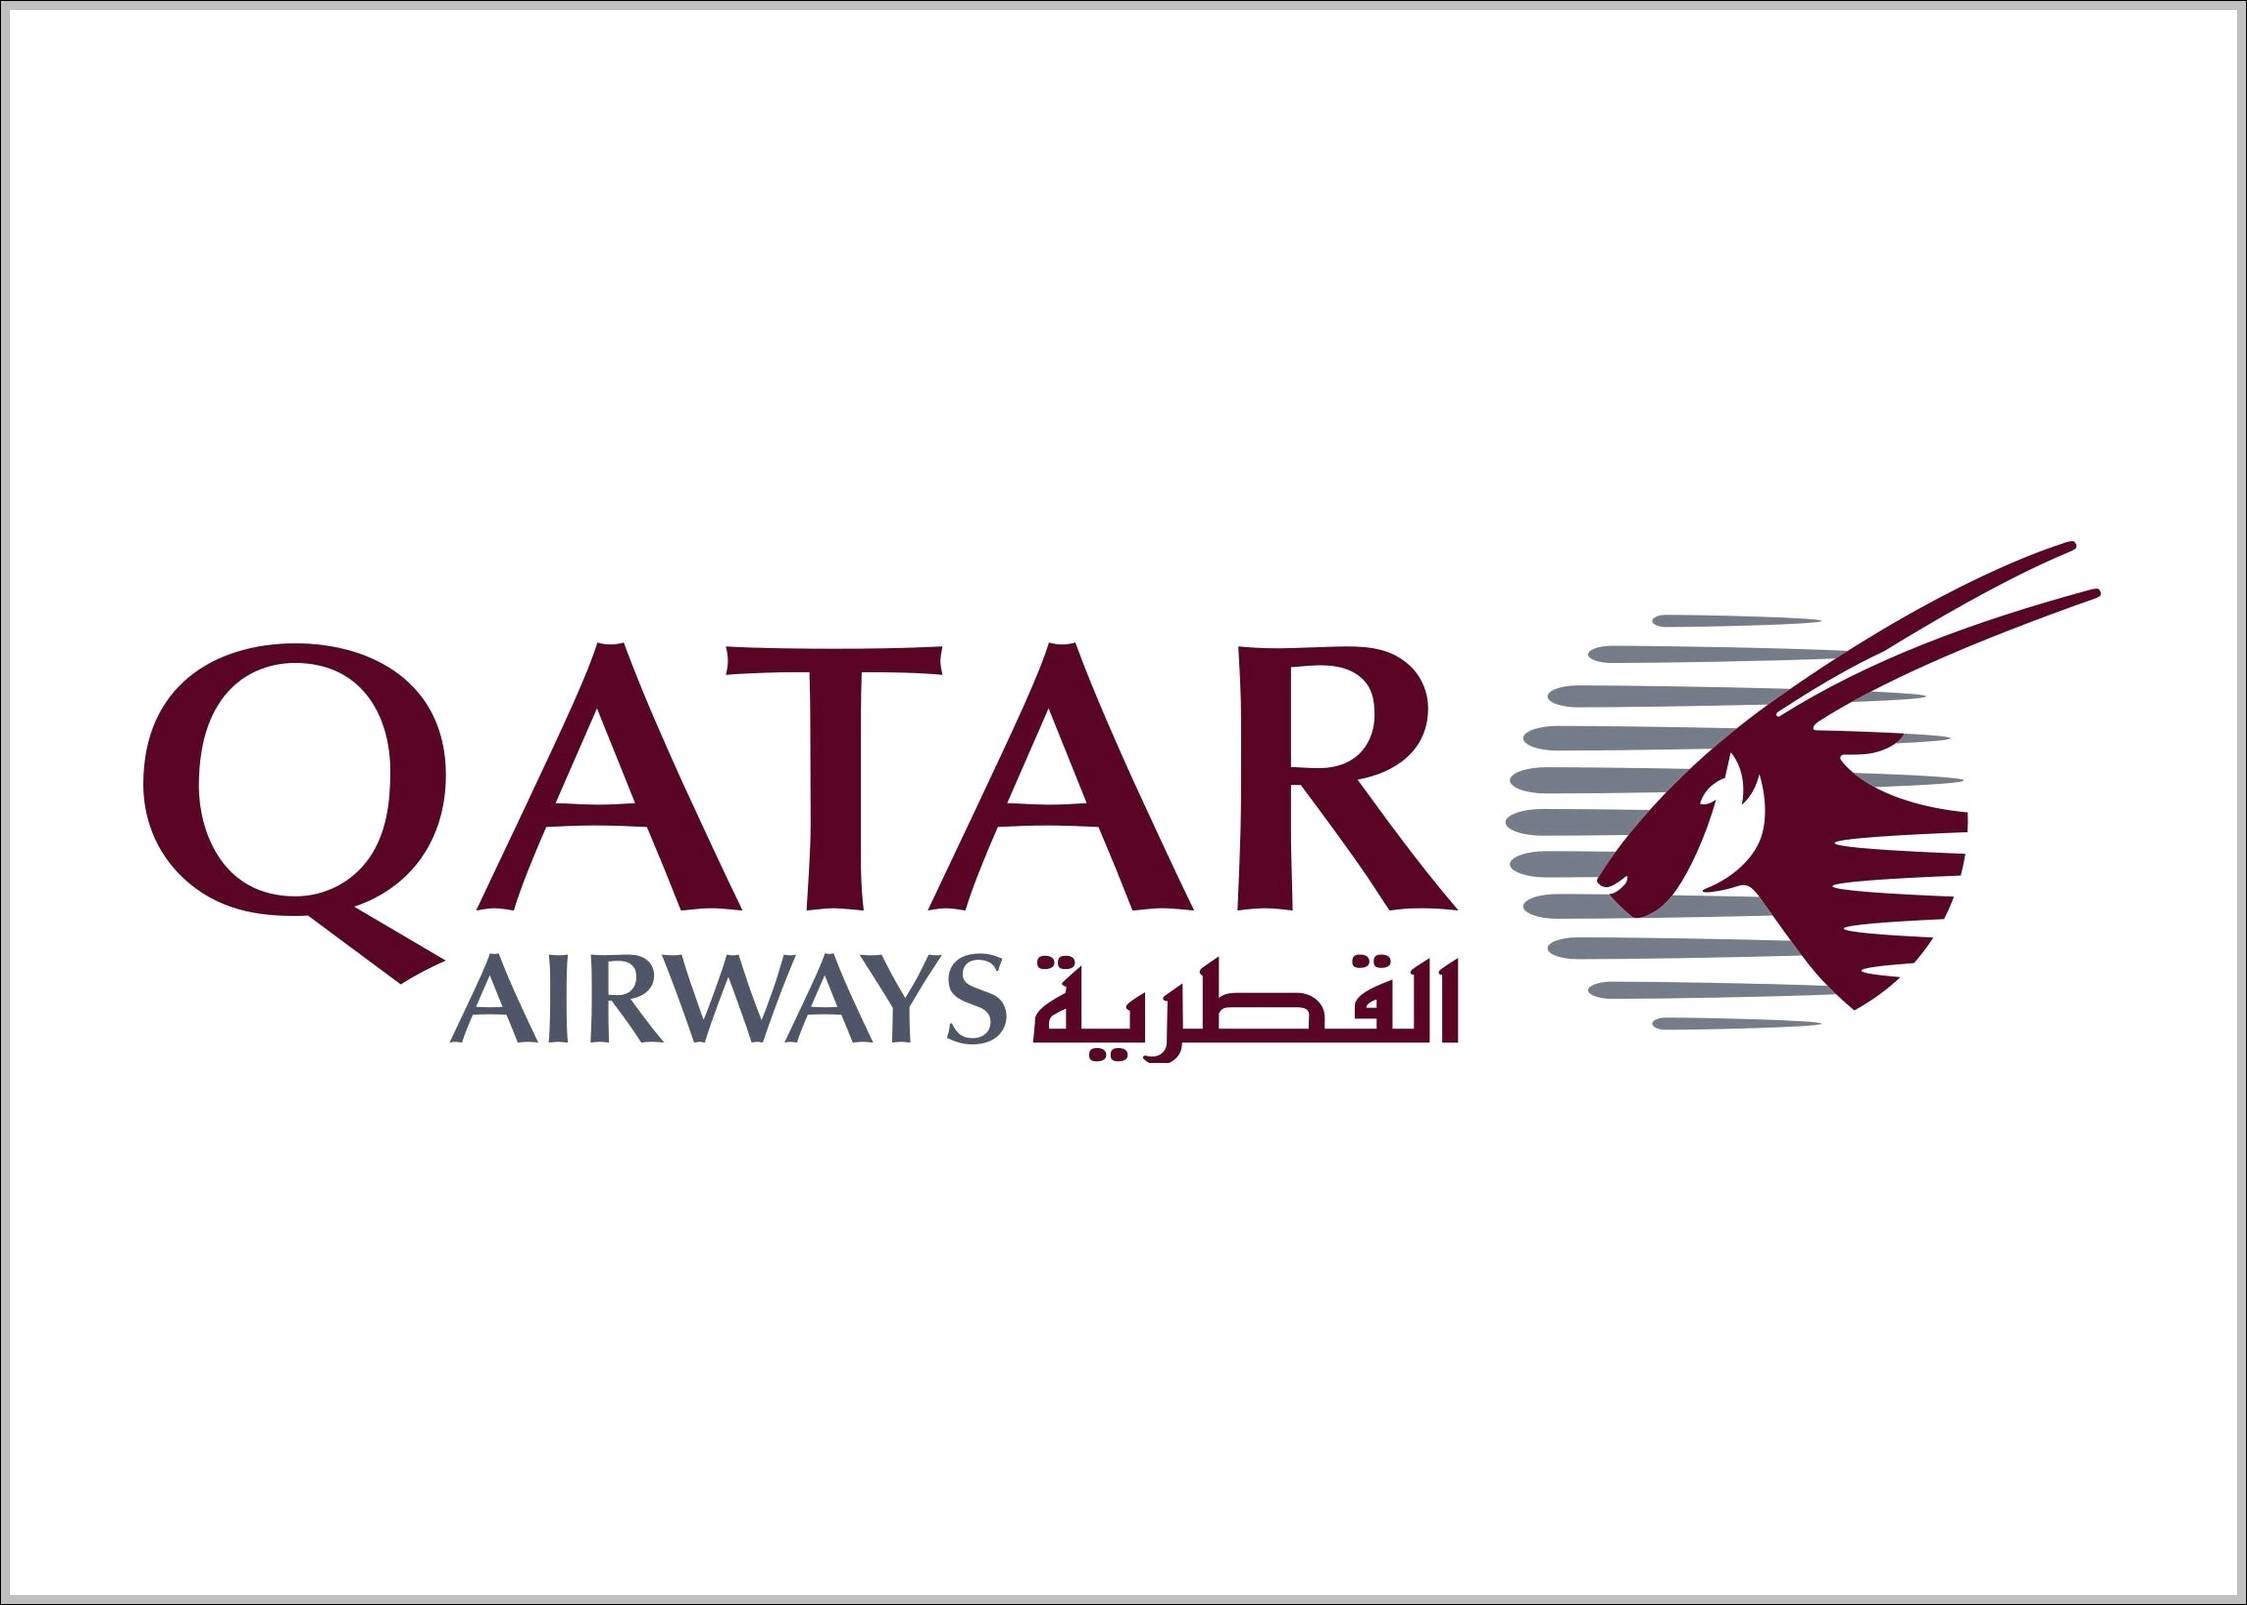 Qatar Airways sign